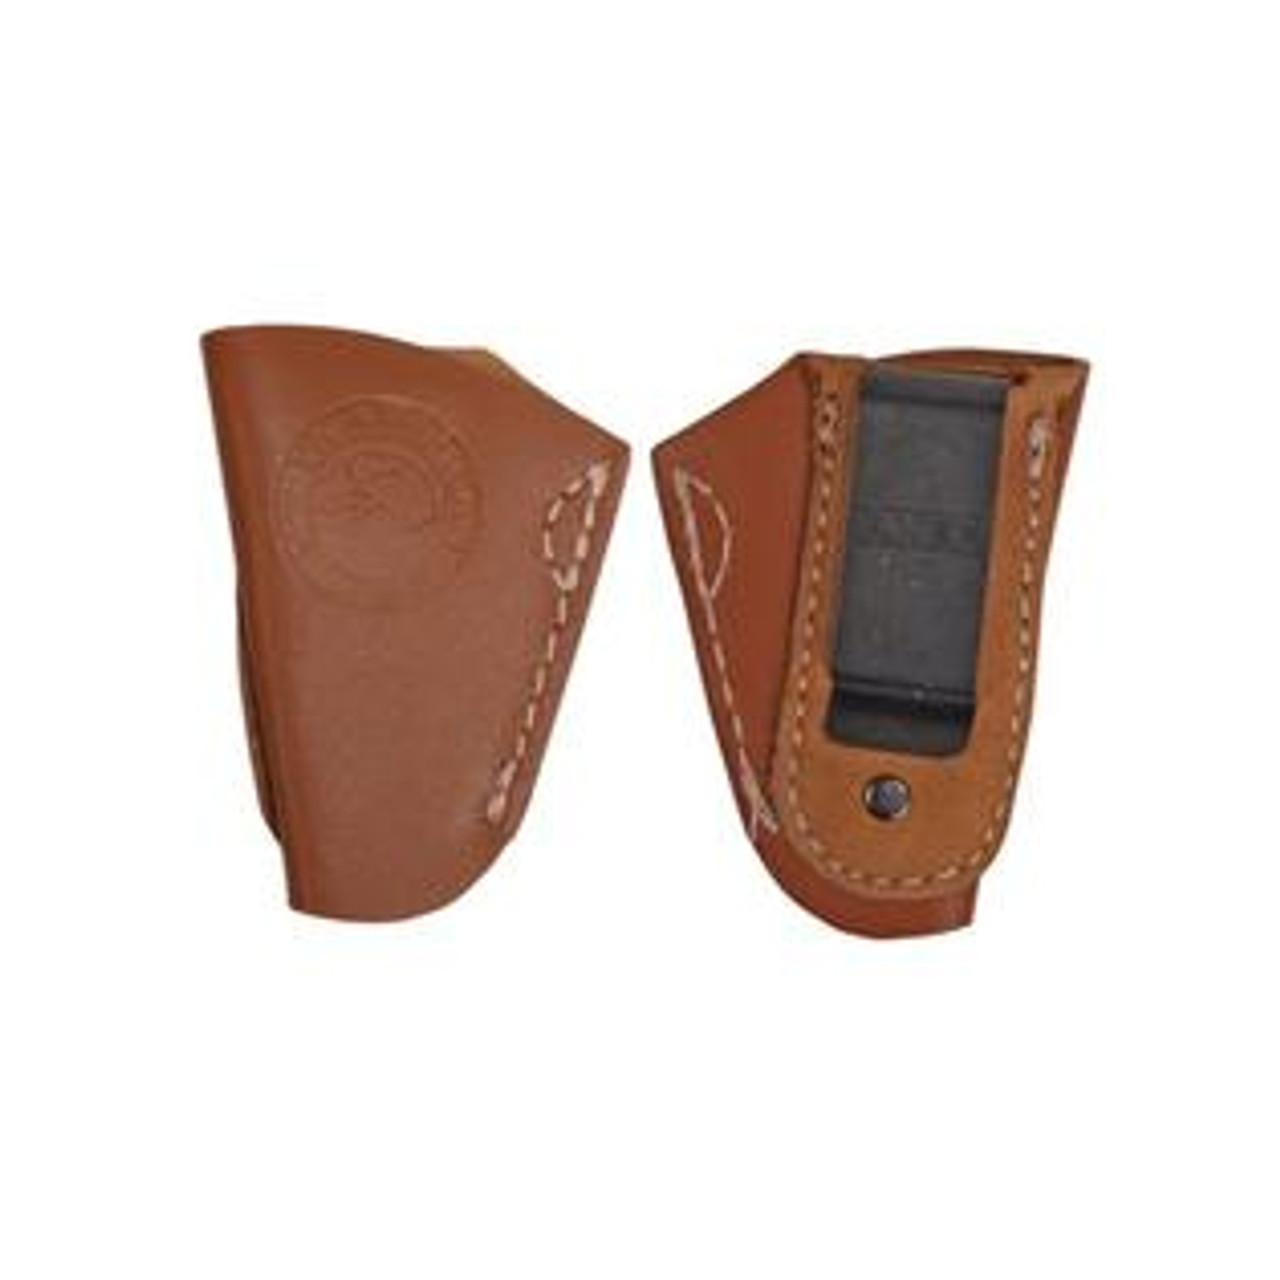 North American Arms HIP-L-BR INSIDE-THE-PANTS Leather Holster Brown for 22LR